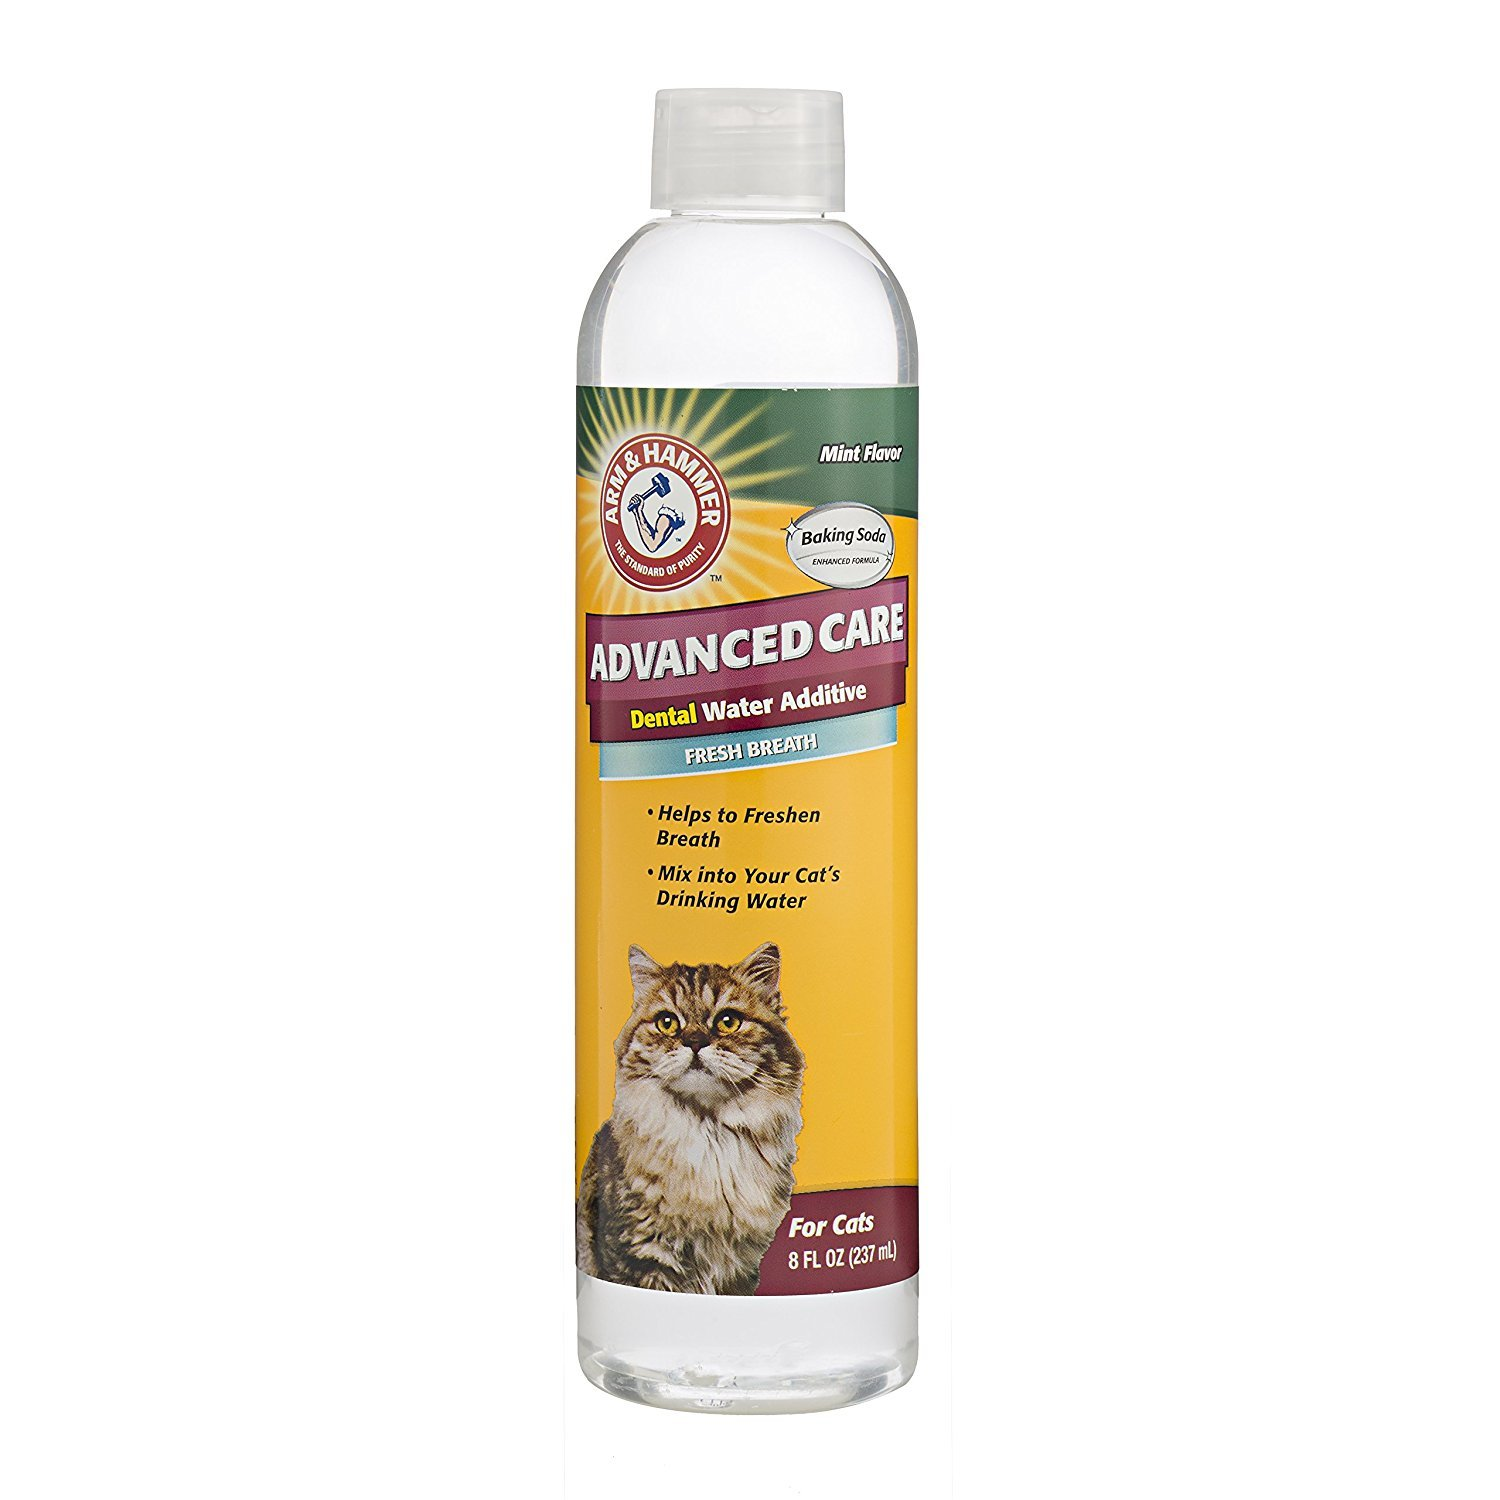 Arm and Hammer Advanced Care Dental Rinse/Water Additive for Cats